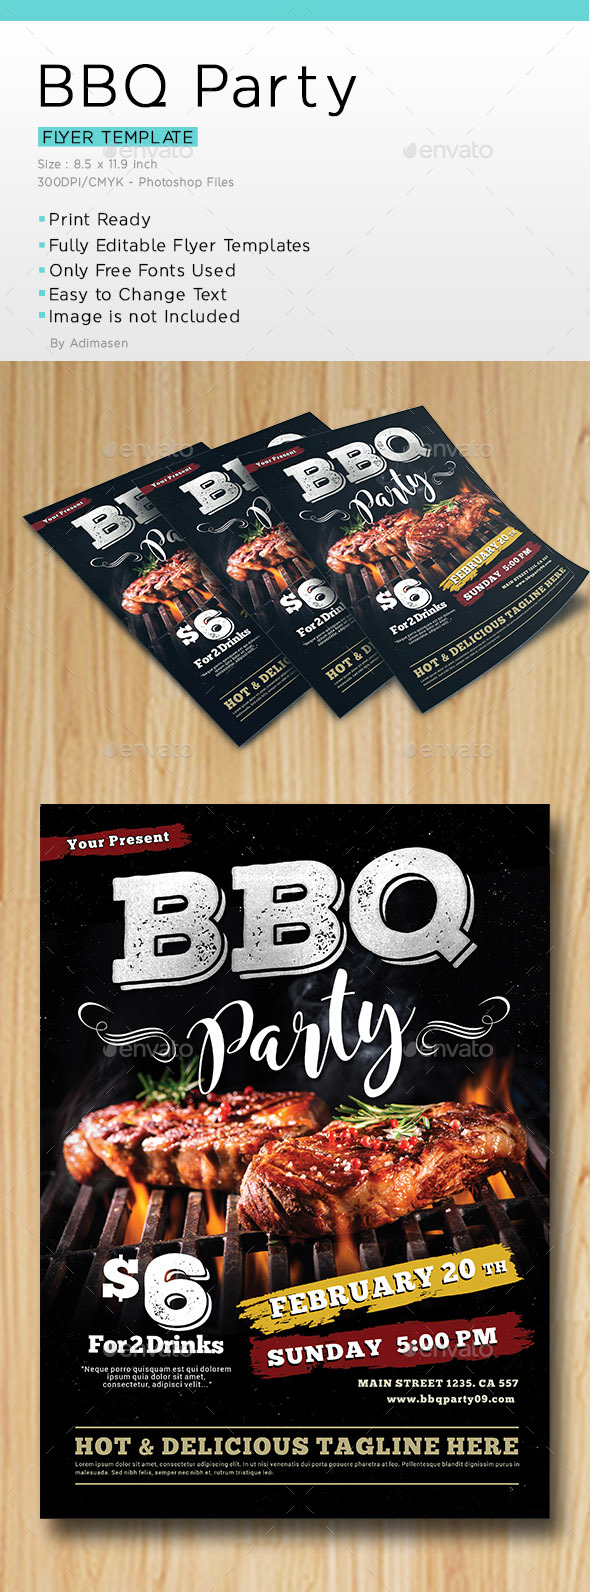 BBQ Party Flyer Template - Restaurant Flyers